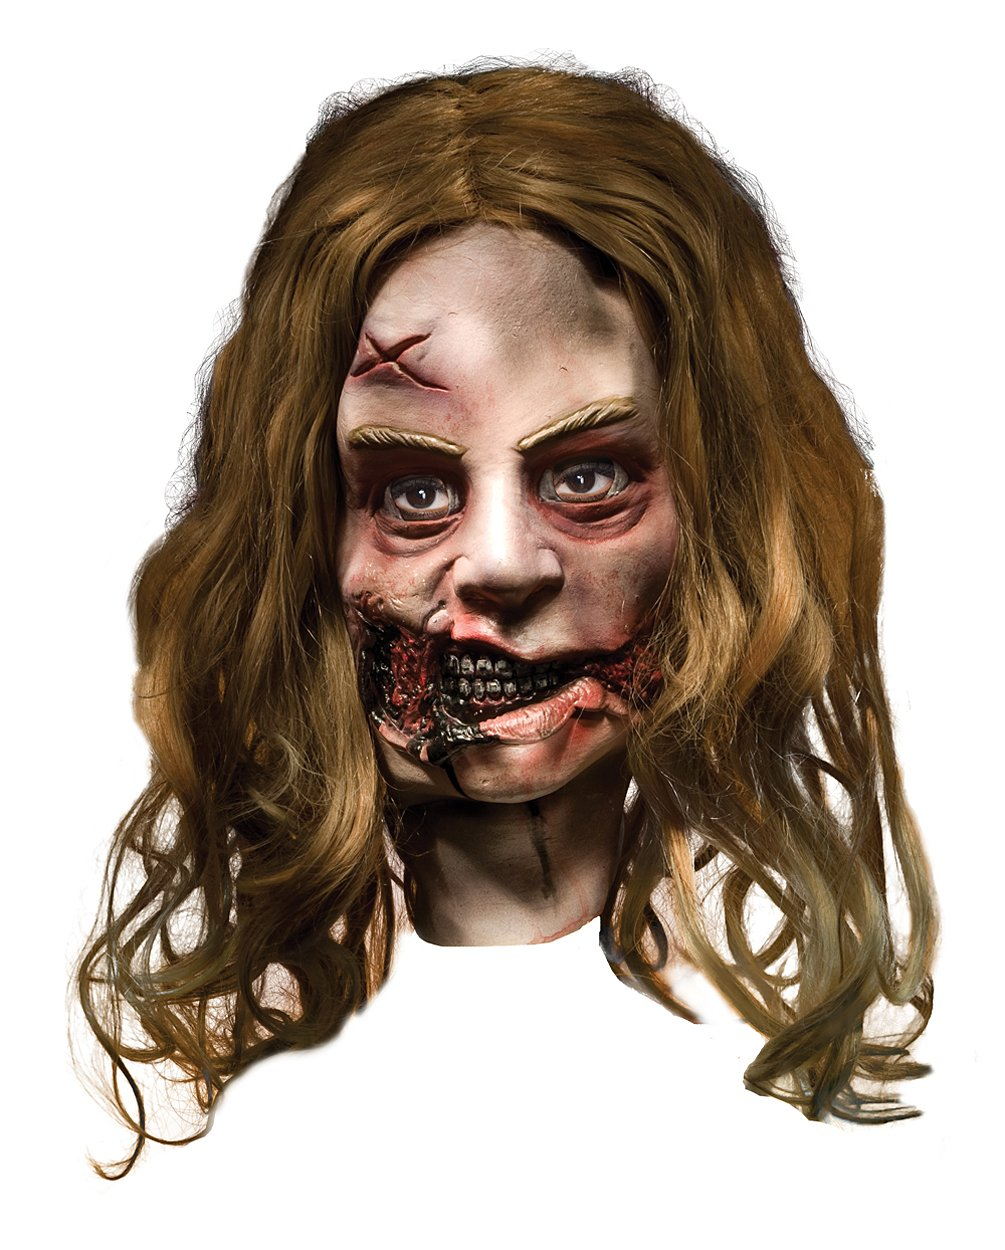 The Walking Dead - Little Girl Zombie Deluxe Mask (Adult)